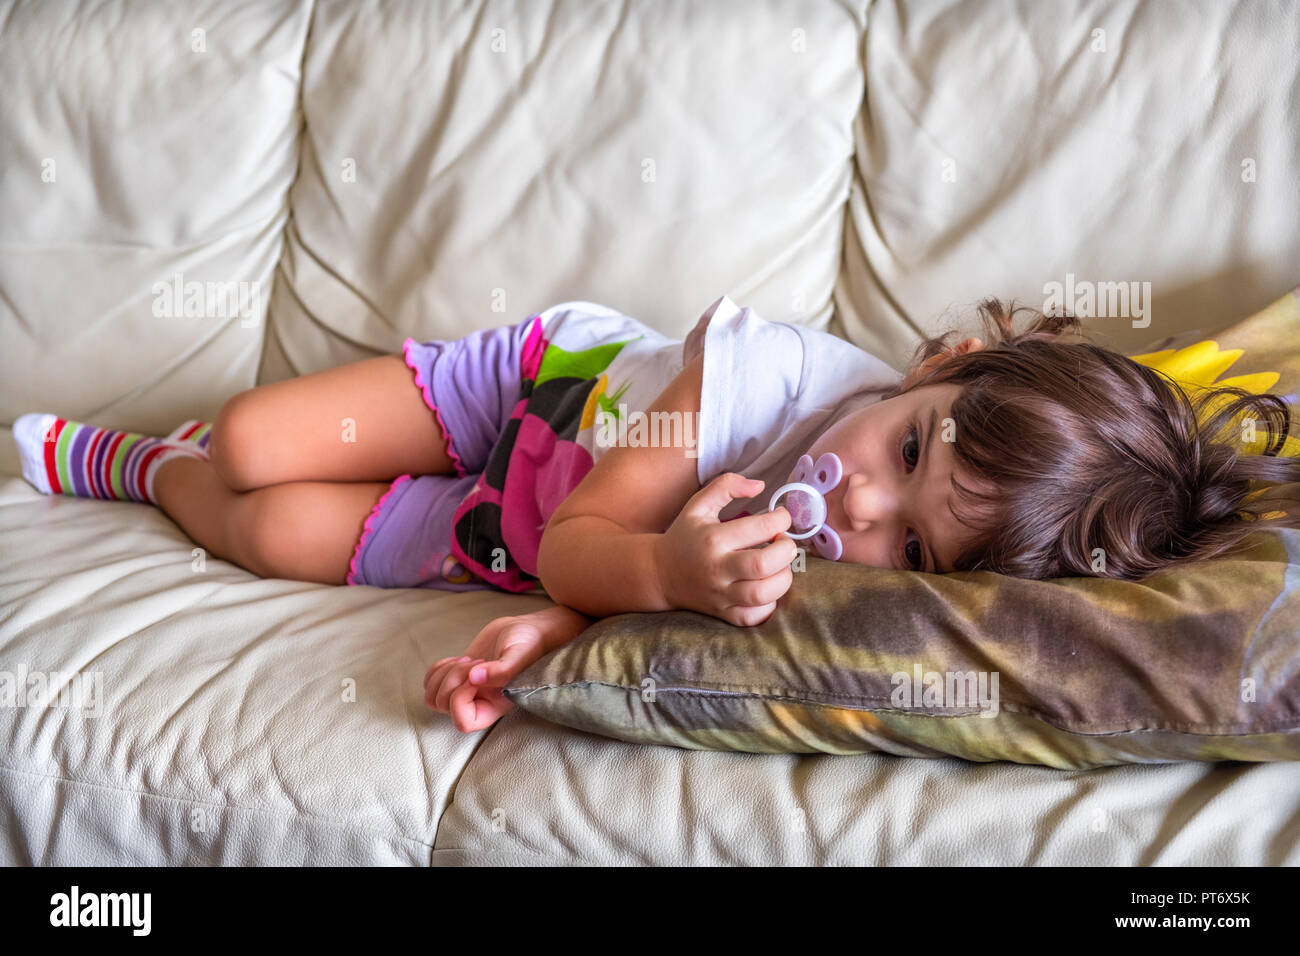 afternoon nap baby napping child couch bedtime sofa lullaby - Stock Image